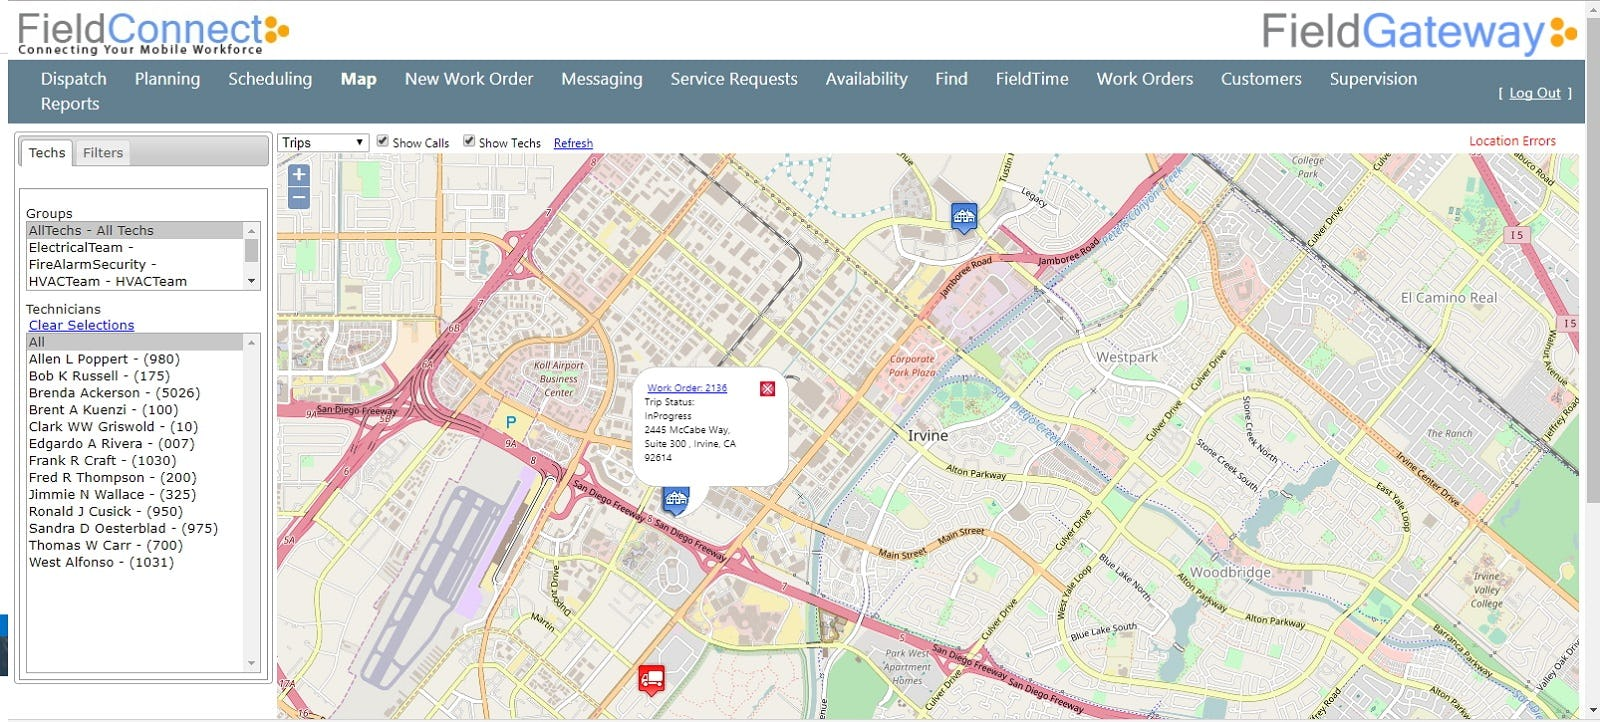 FieldConnect Software - Maps and Back Office Management